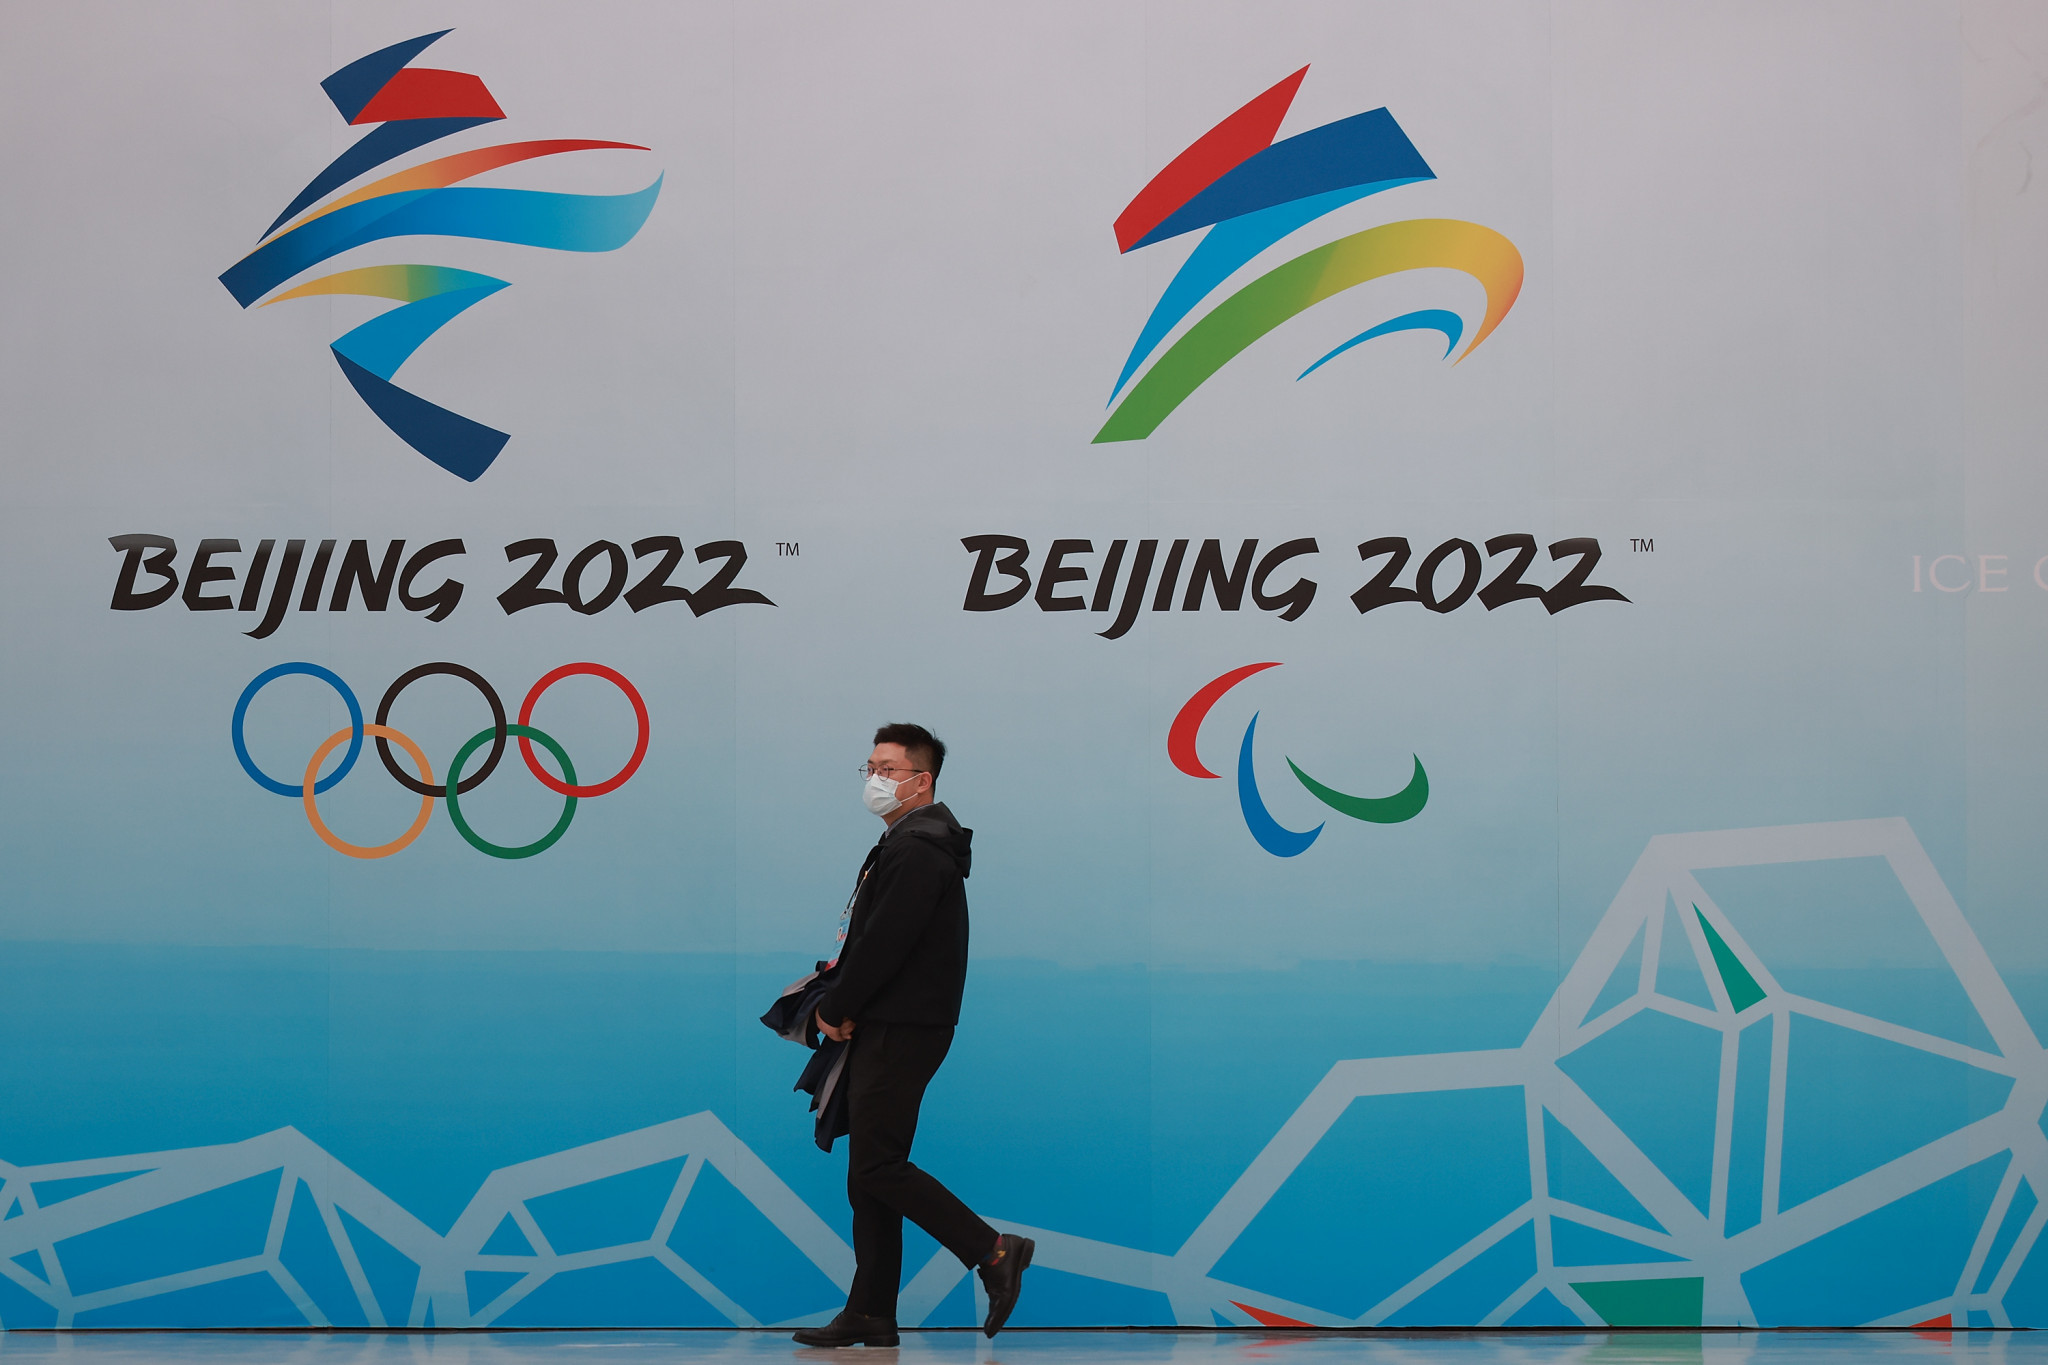 Virtual China House, which provides introduction to Beijing 2022, launched by Chinese Olympic Committee